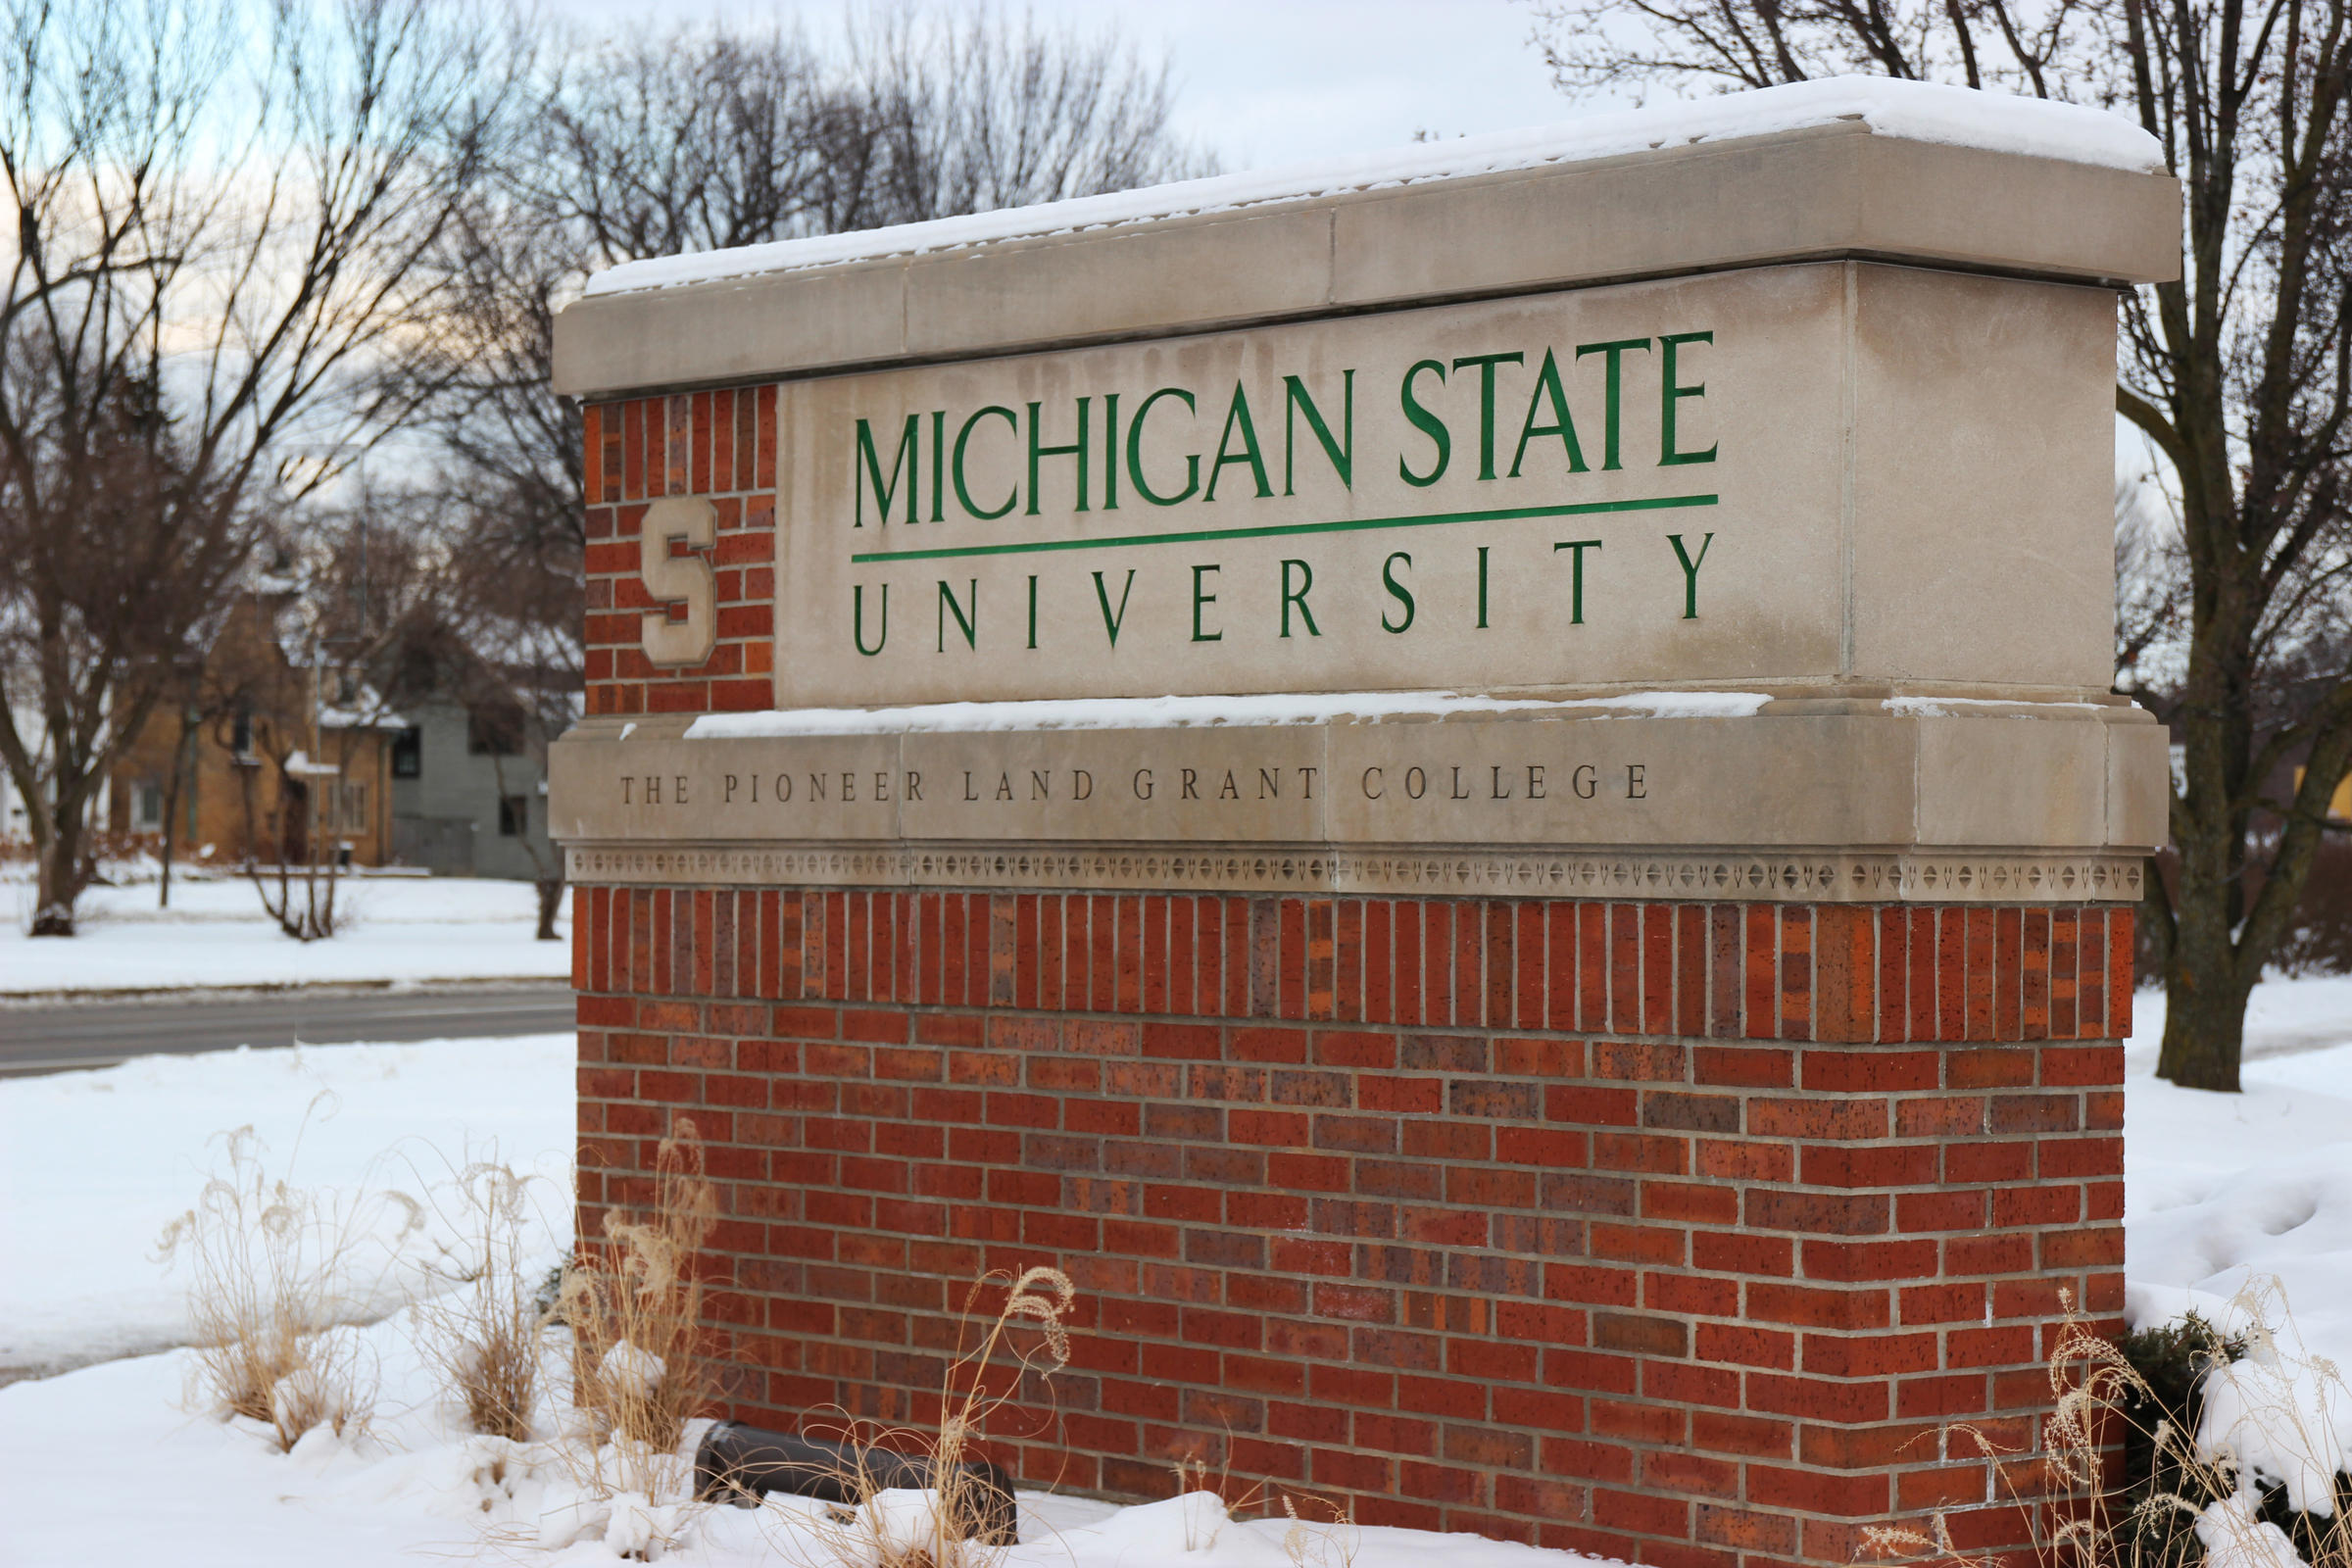 Education Department opens investigation into how MSU handled Nassar sex abuse cases